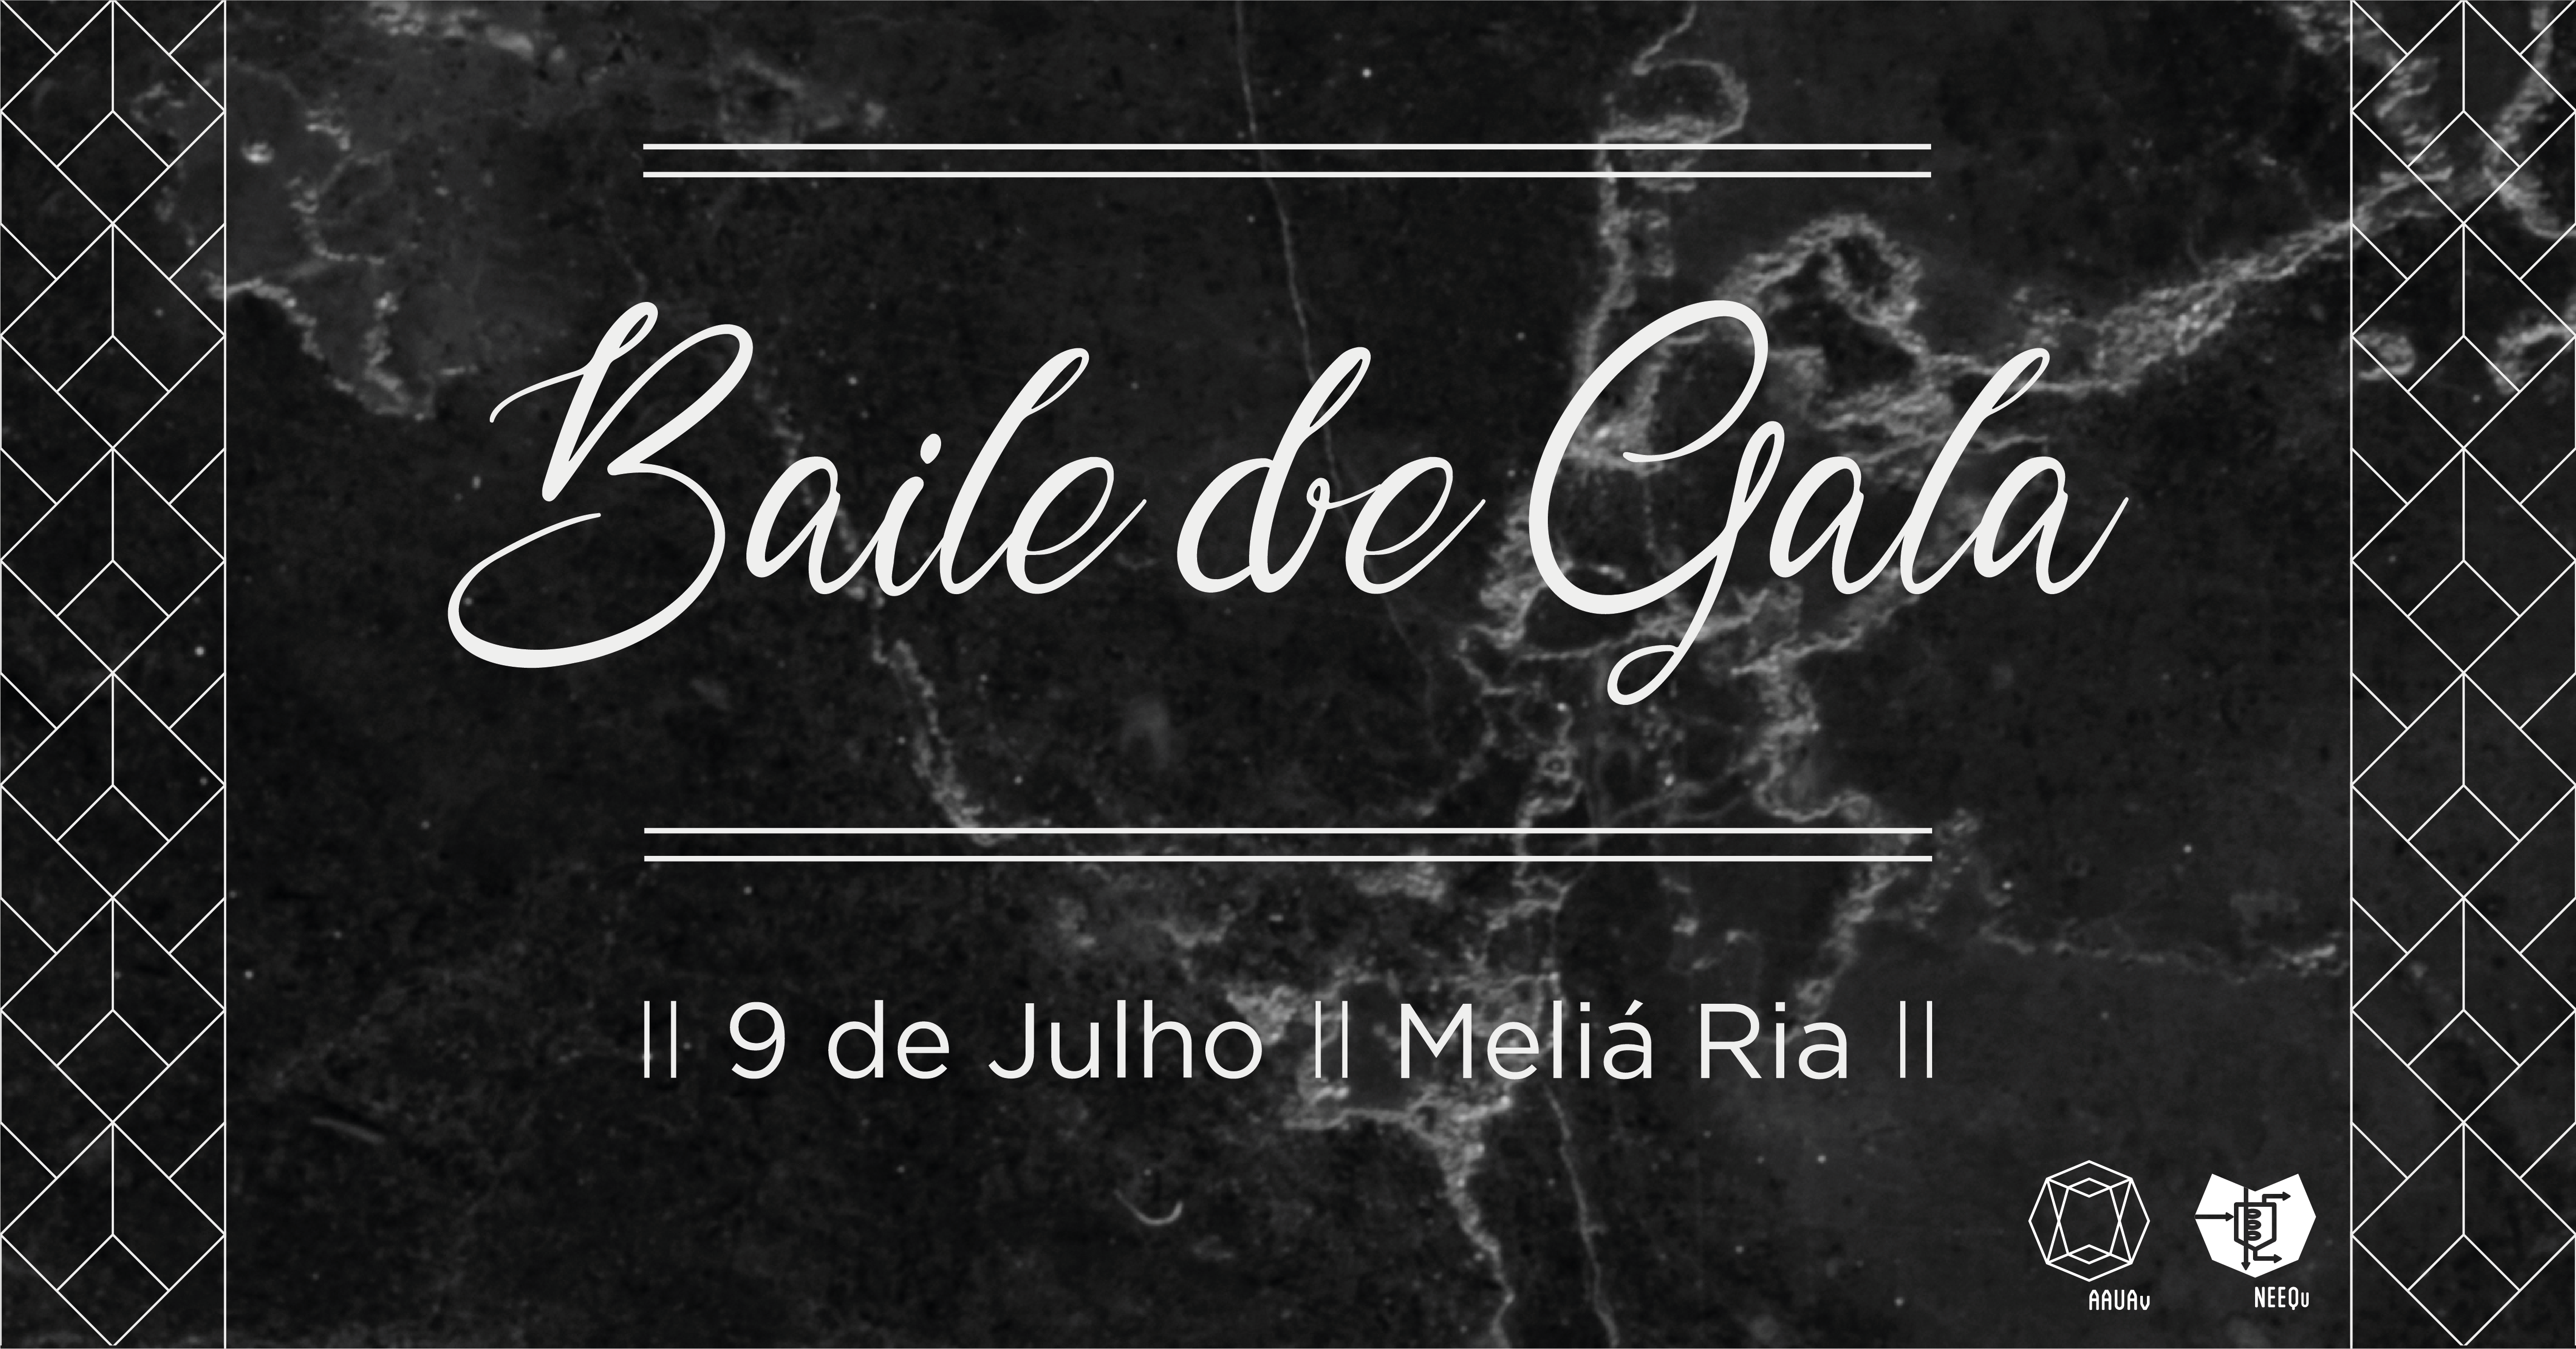 You are currently viewing Baile de Gala